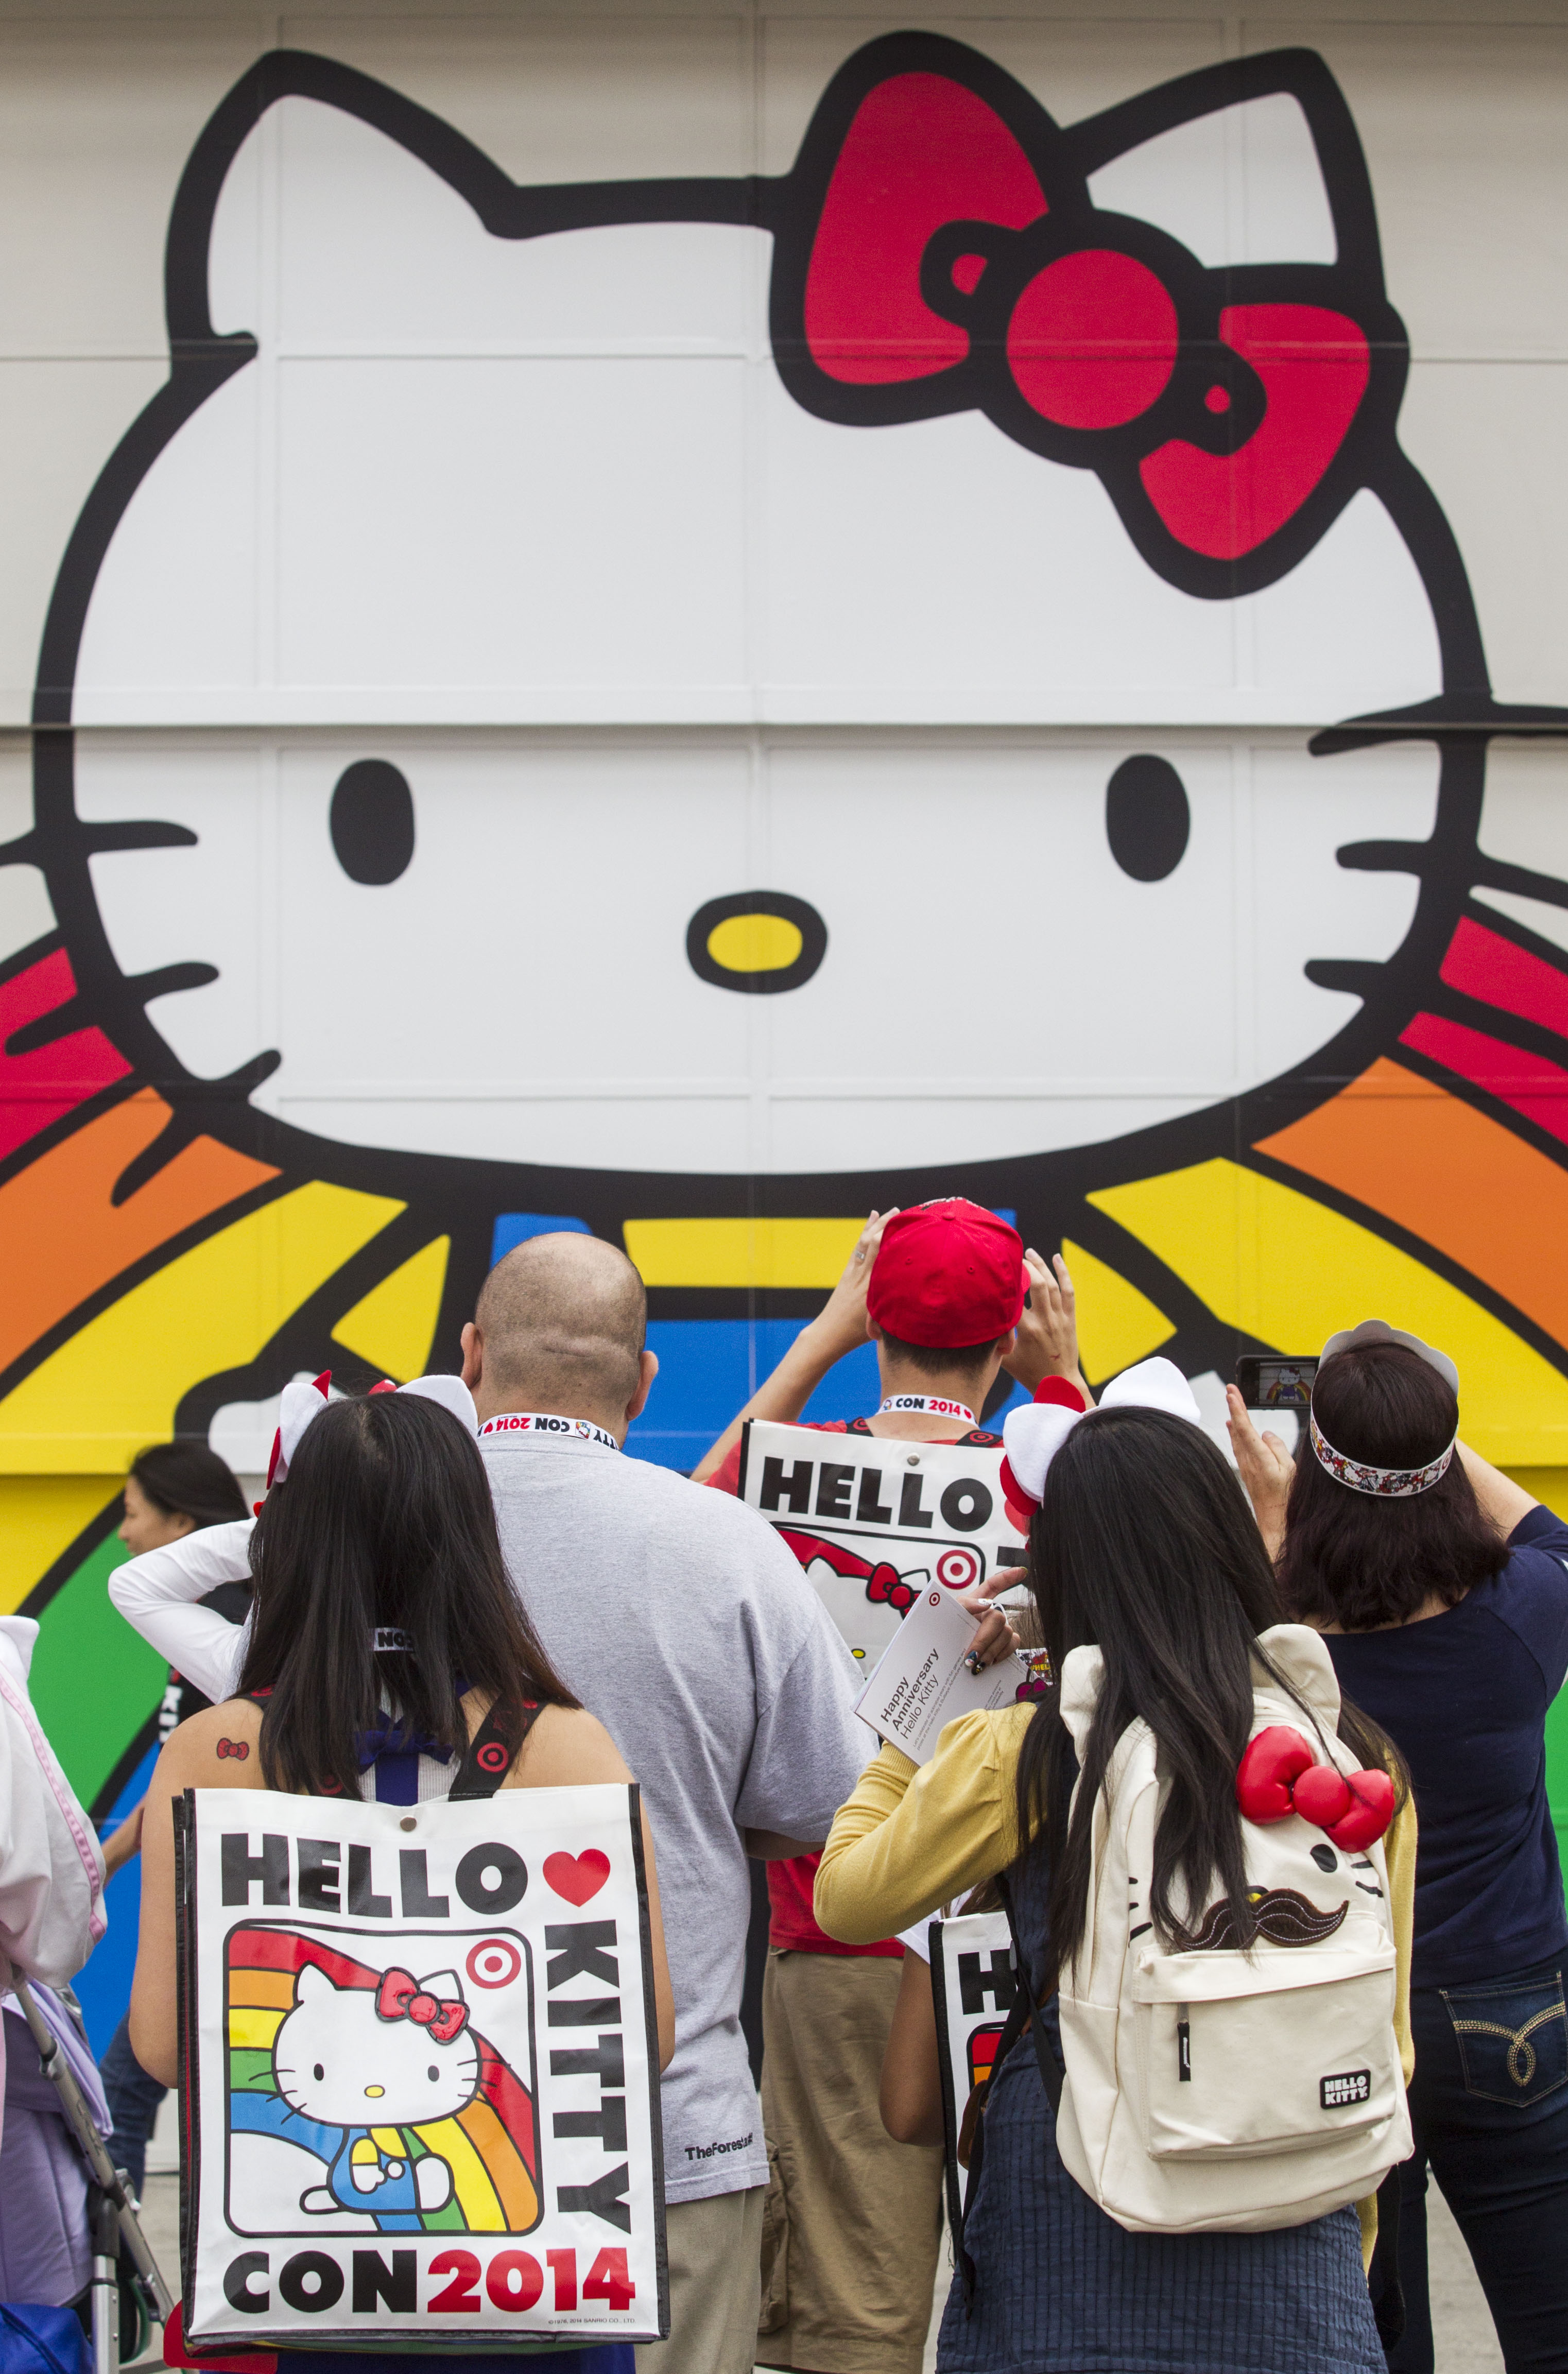 The Hello Kitty Con 2014 at the Geffen Contemporary at MOCA on Oct. 31 2014, in Los Angeles.